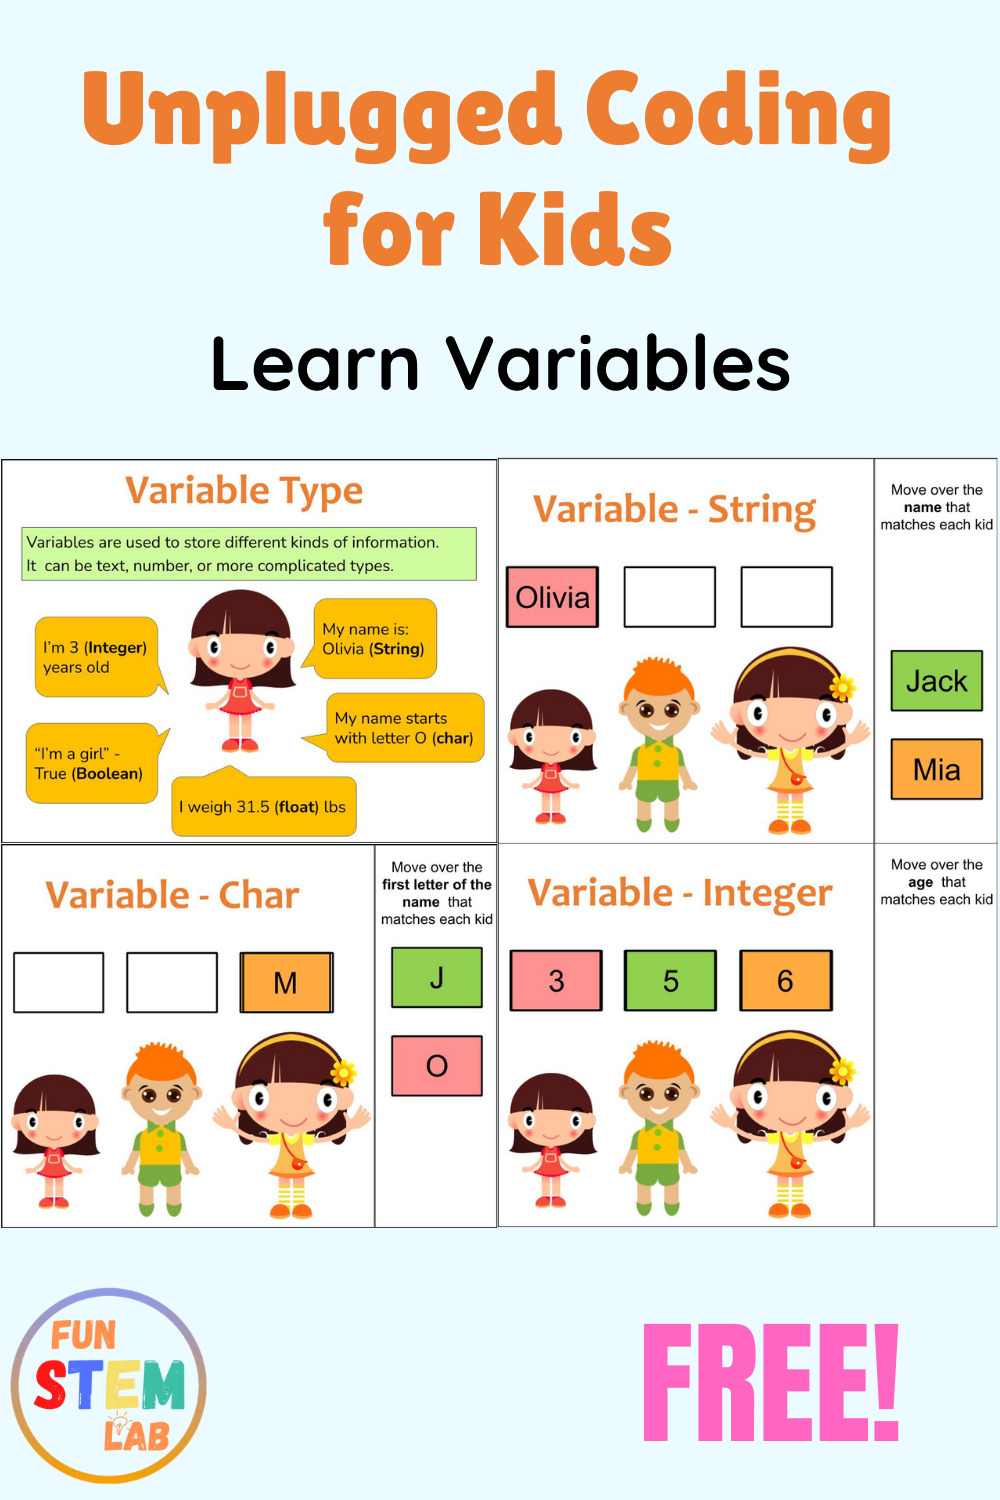 unplugged coding activities for kids - learn variables